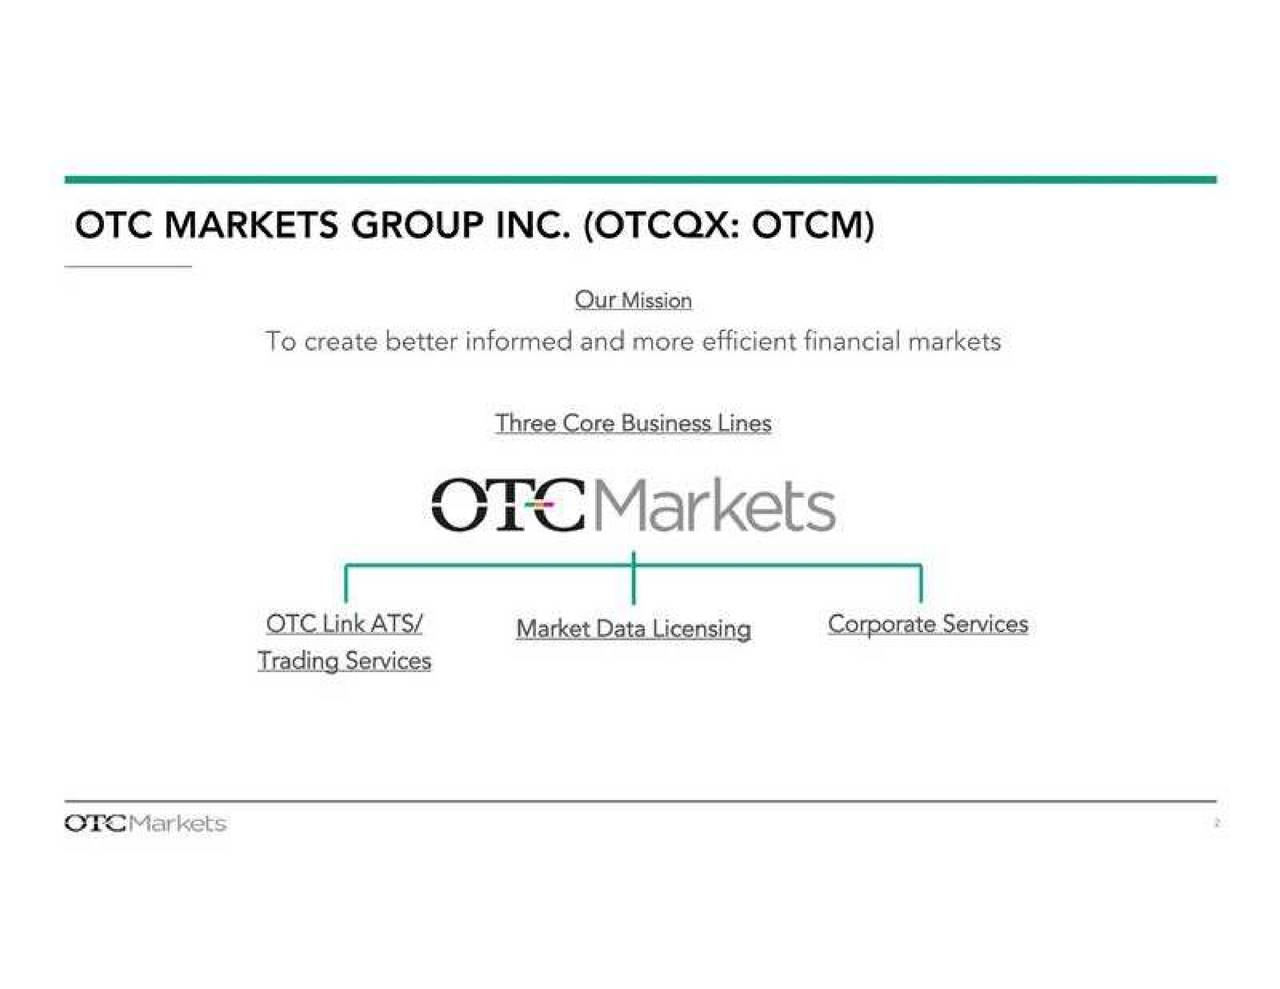 OTC Markets (OTCM) Presents At 29th Annual ROTH Conference - OTC Markets Group Inc.A (OTCMKTS ...